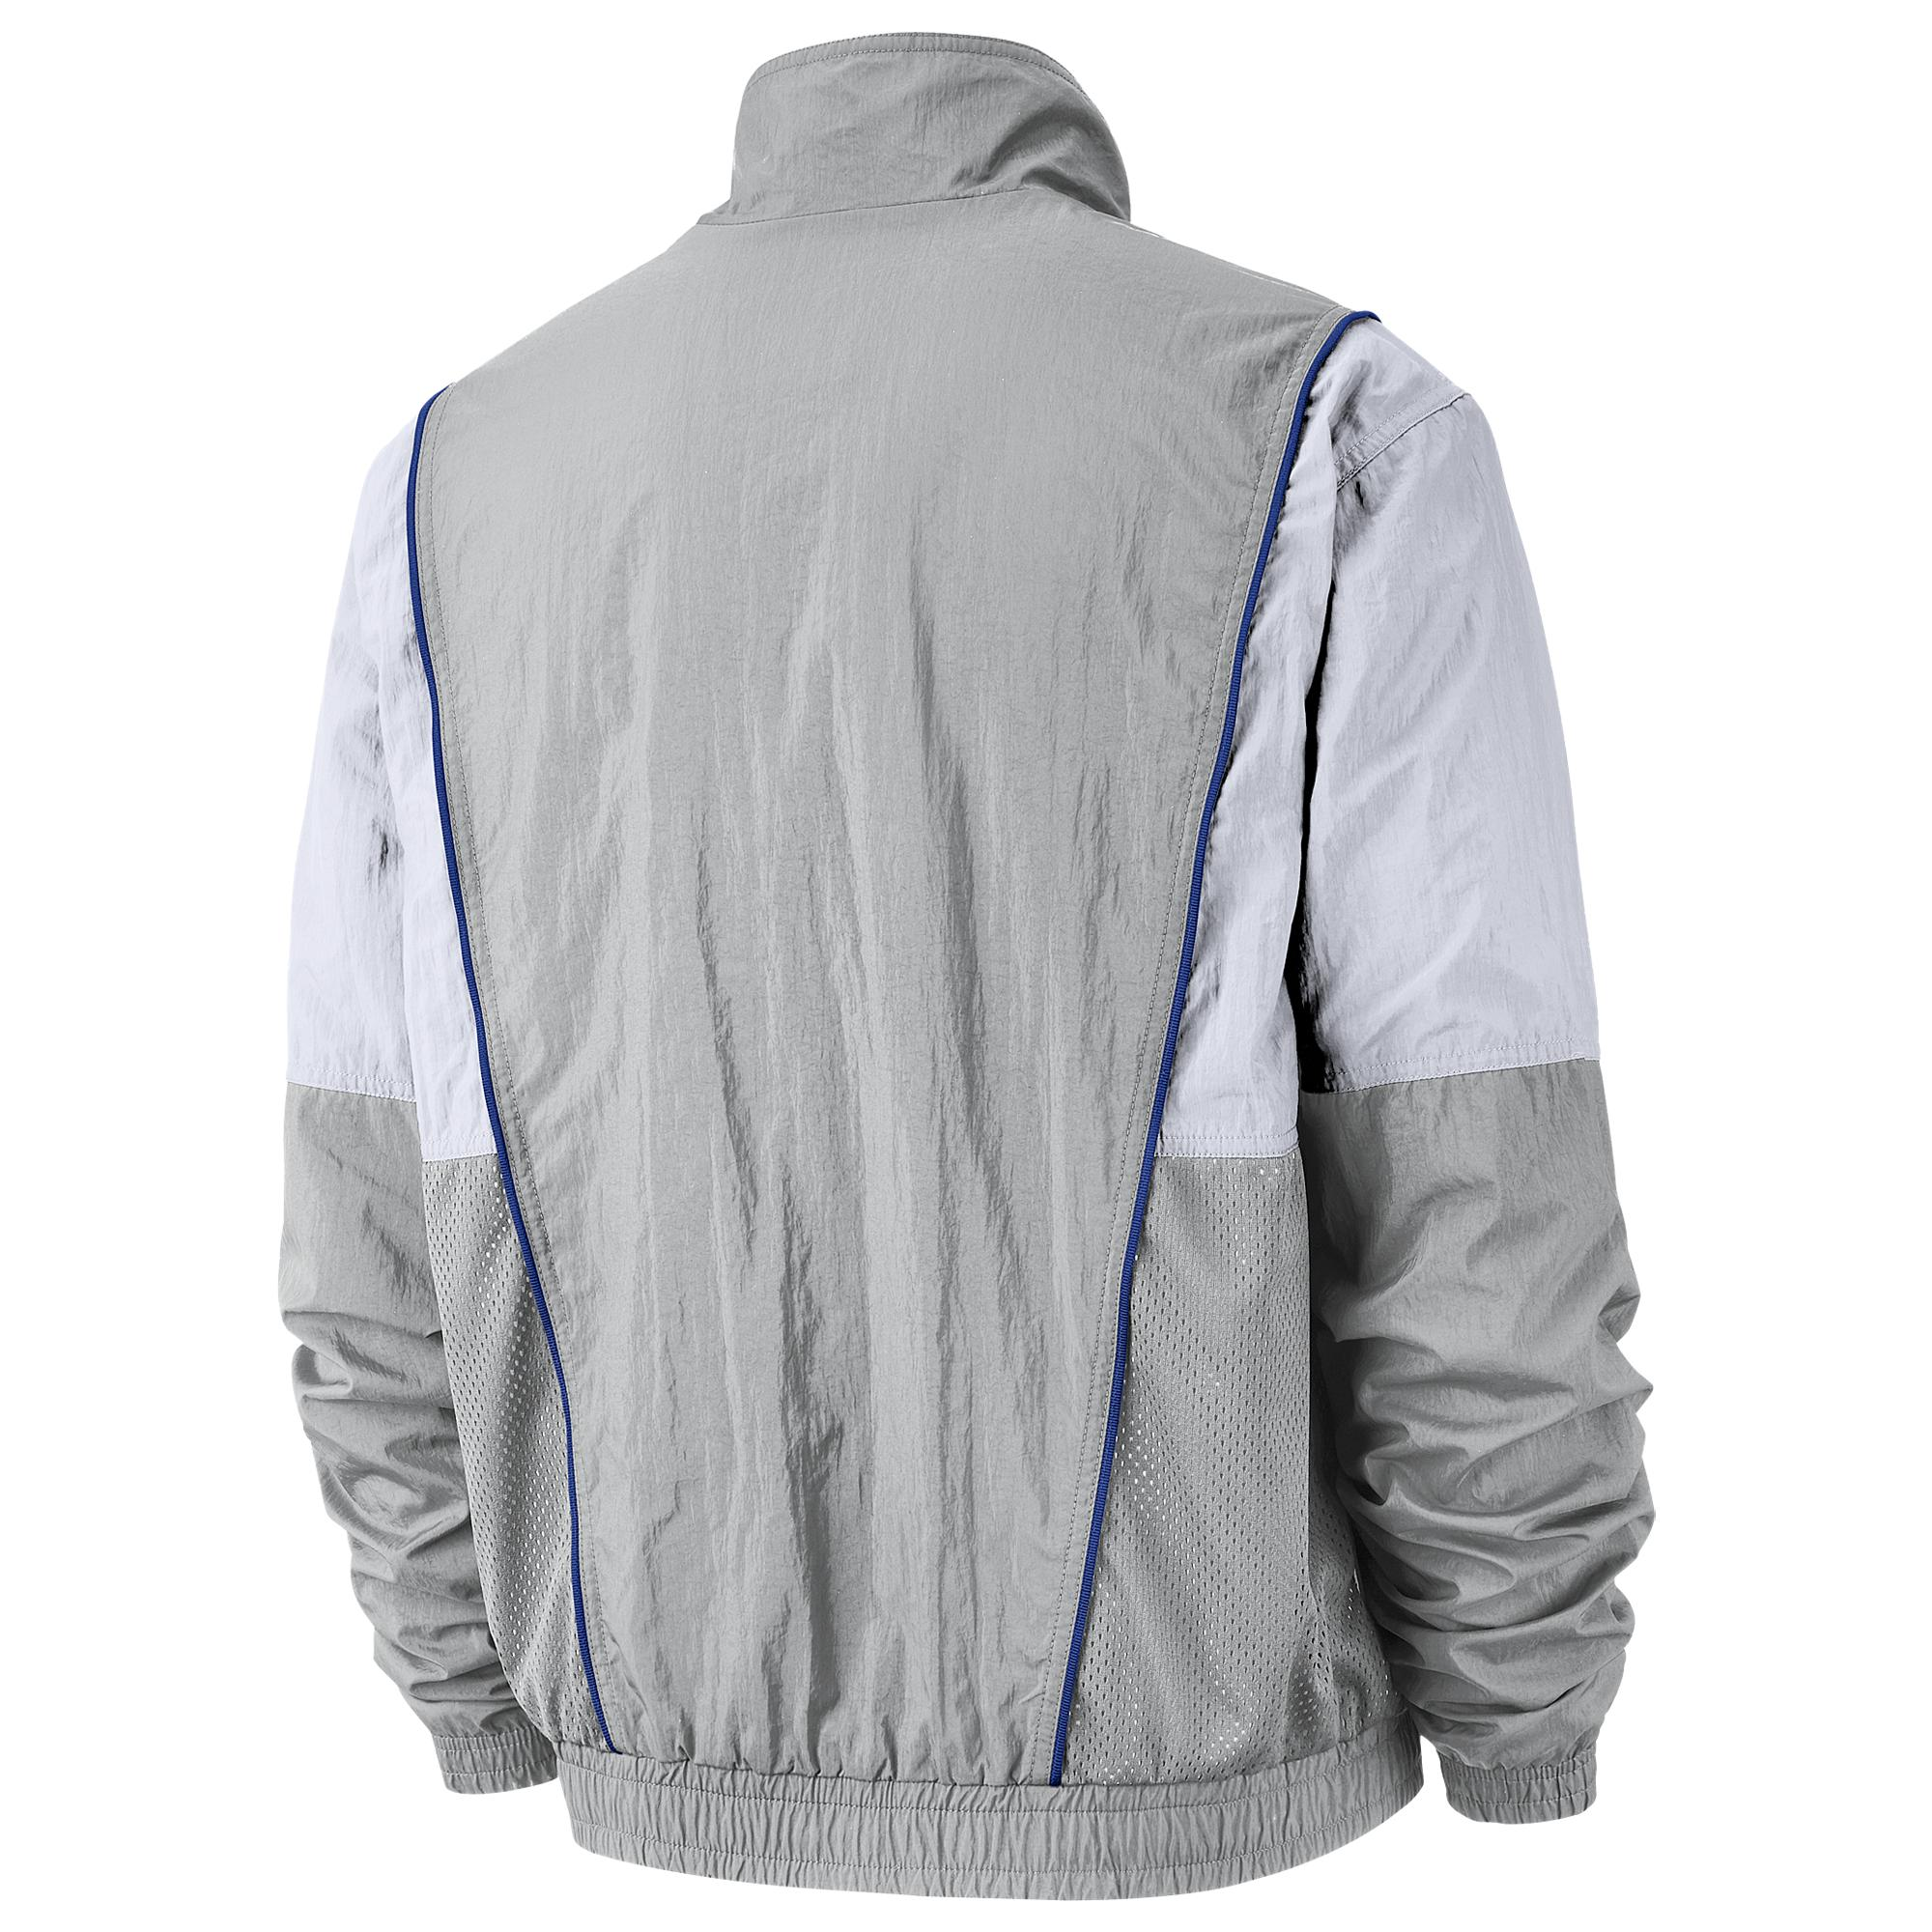 fdf58e54cad24 Nike - Gray Philadelphia 76ers Nba Courtside City Edition Nylon Jacket for  Men - Lyst. View fullscreen